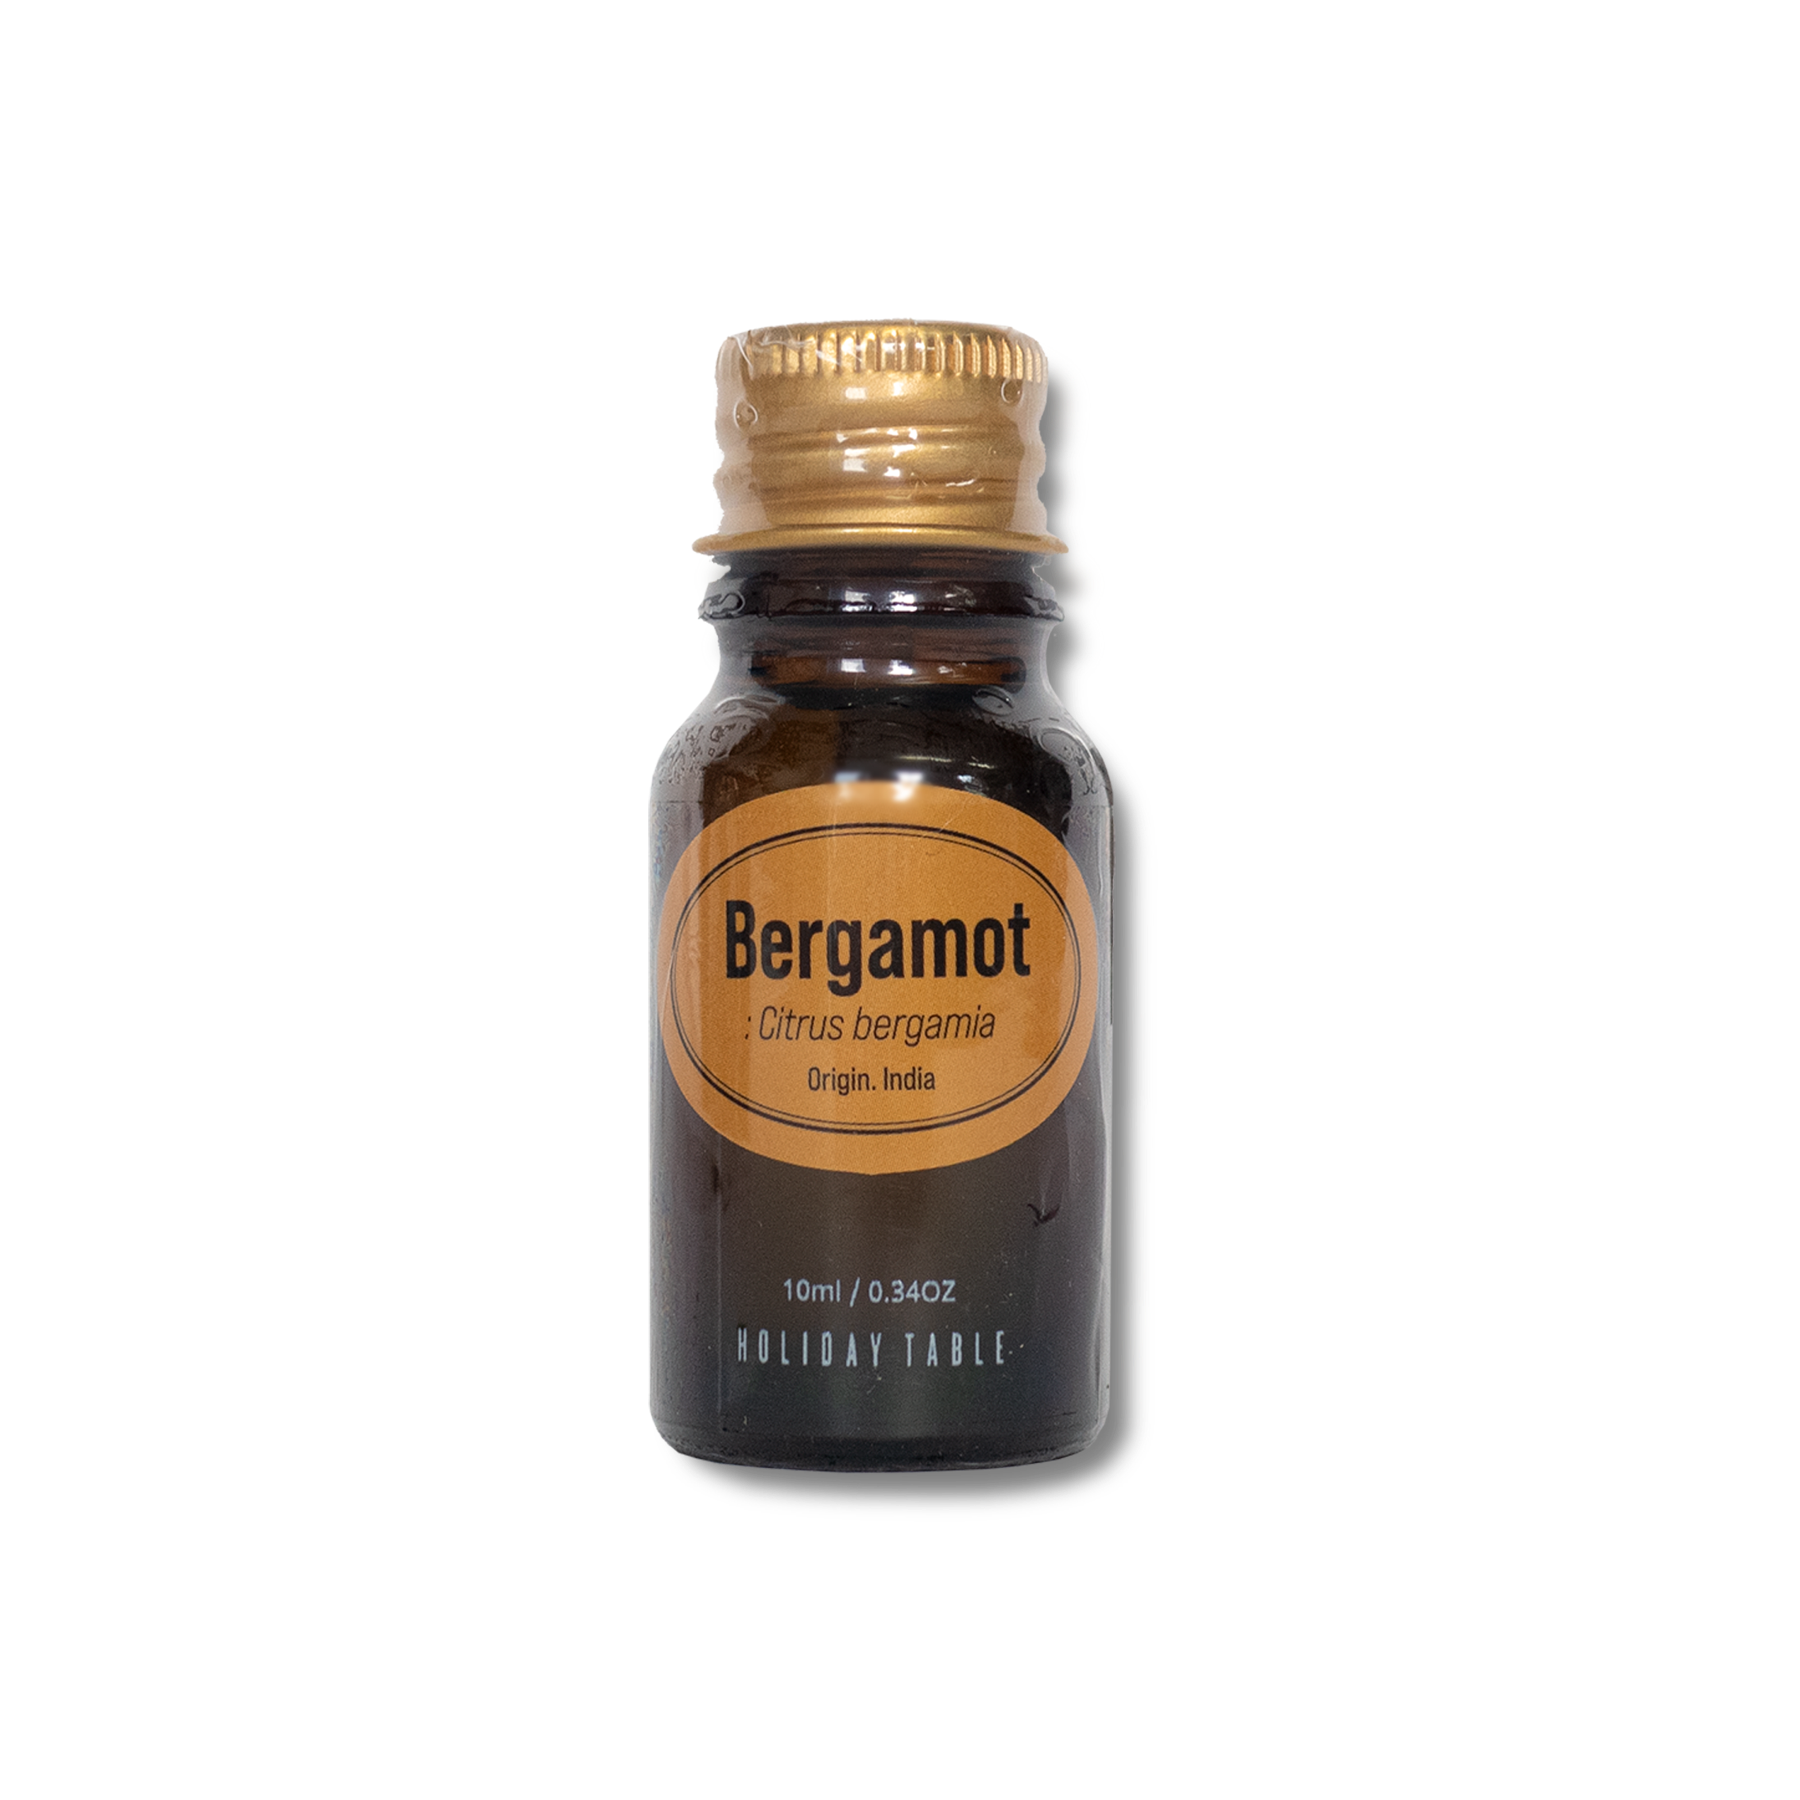 베르가못 오일 10ml   Citrus bergamia, Origin. India